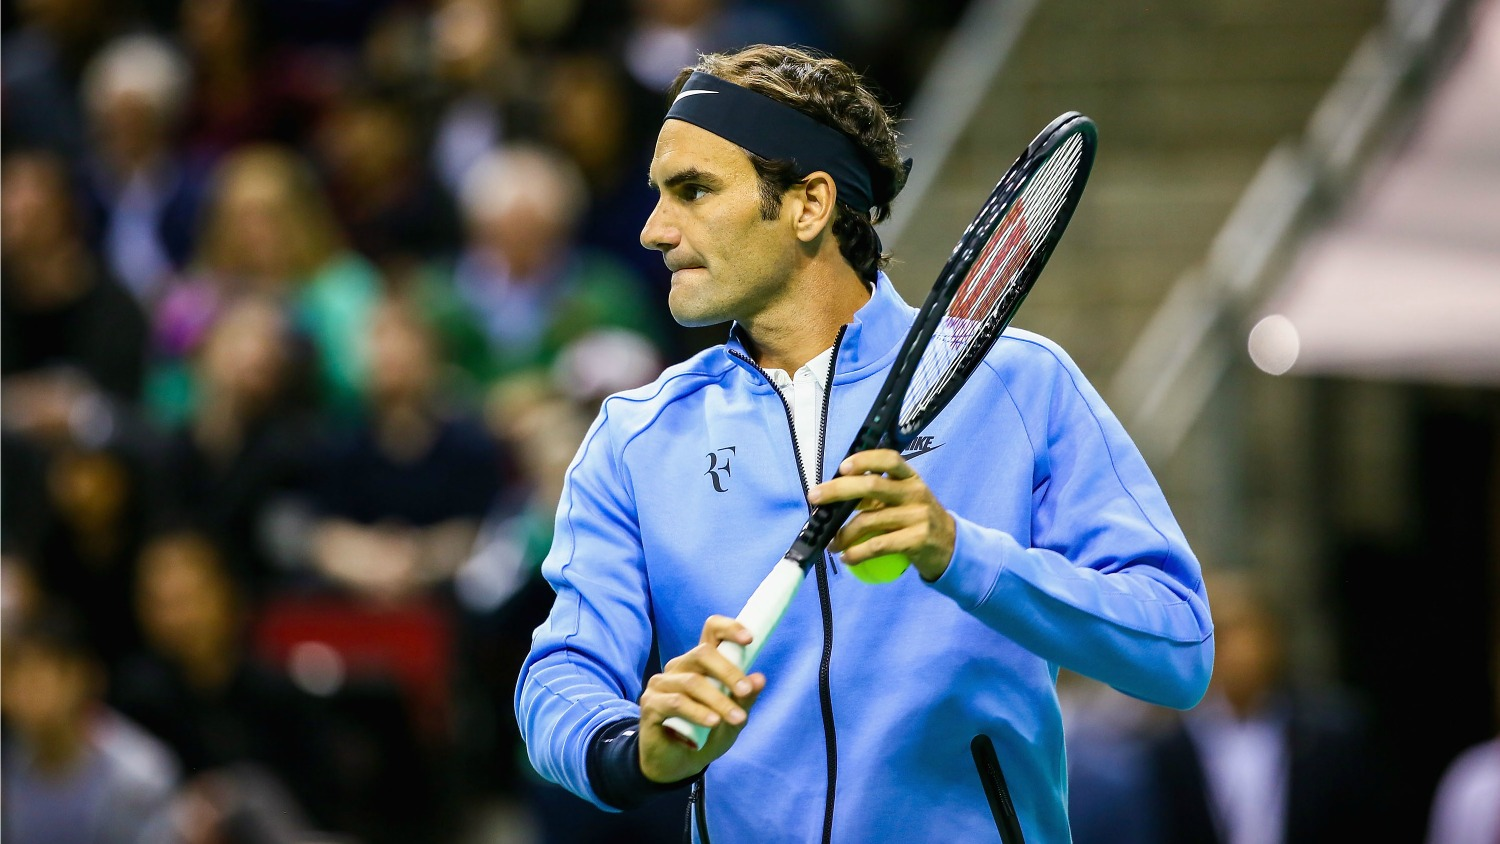 It Turns Out Pro Tennis Players Are Obsessed with Sweet Potatoes